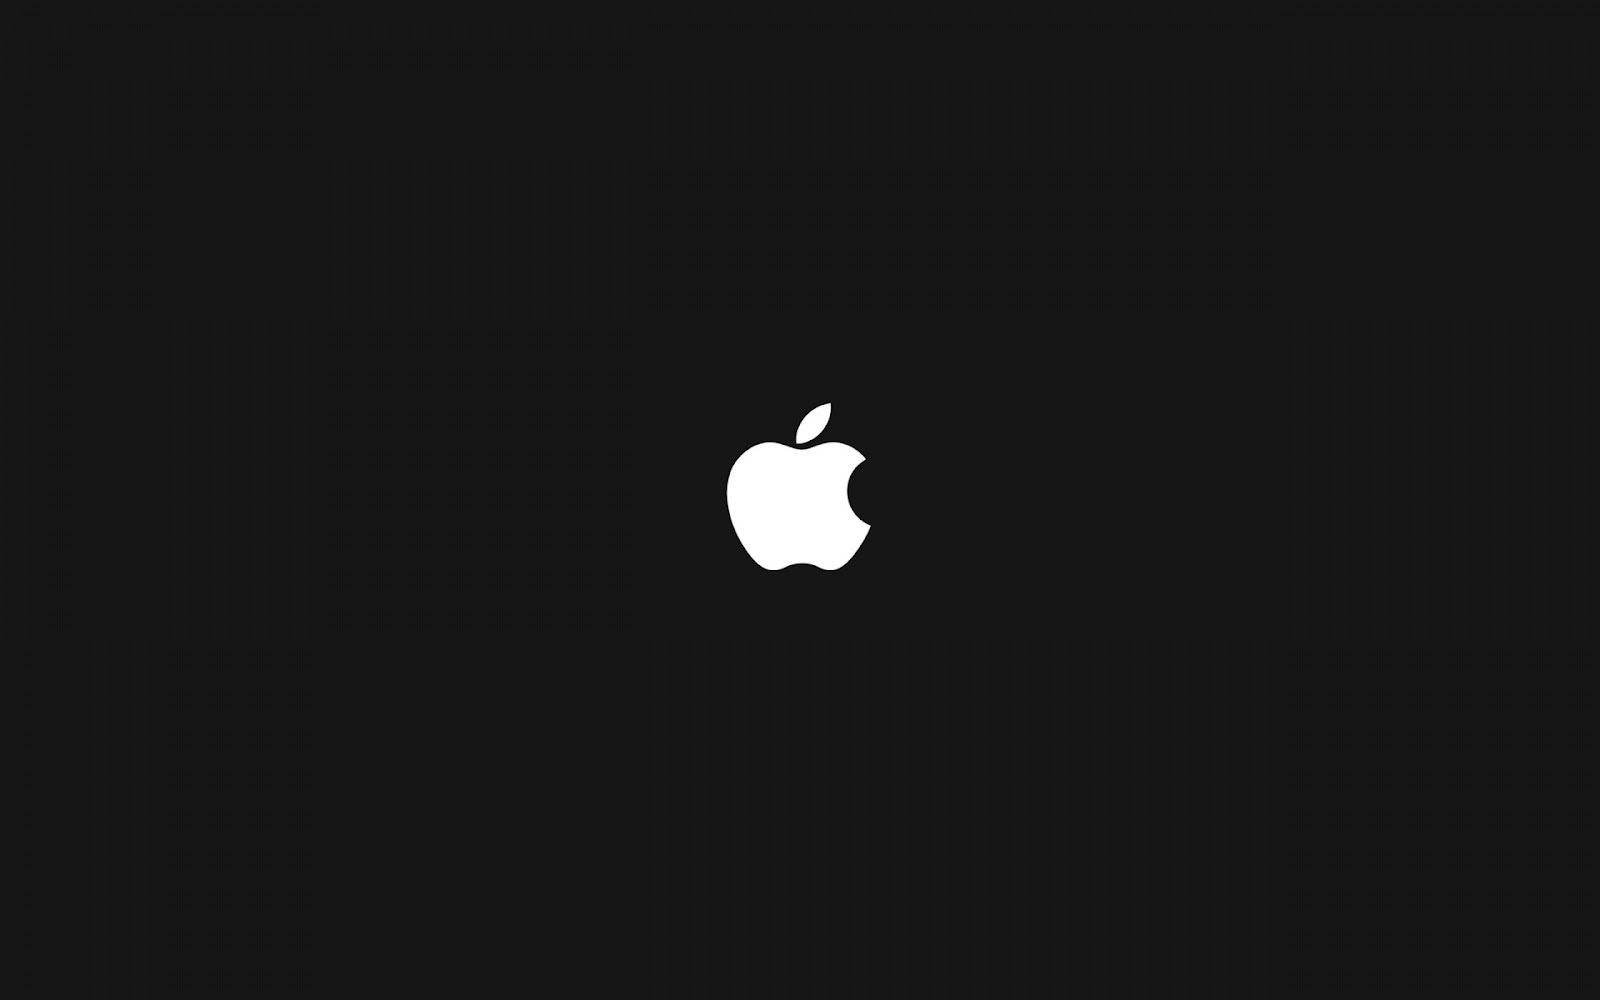 Hd Apple Wallpapers 1080p Sf Wallpaper